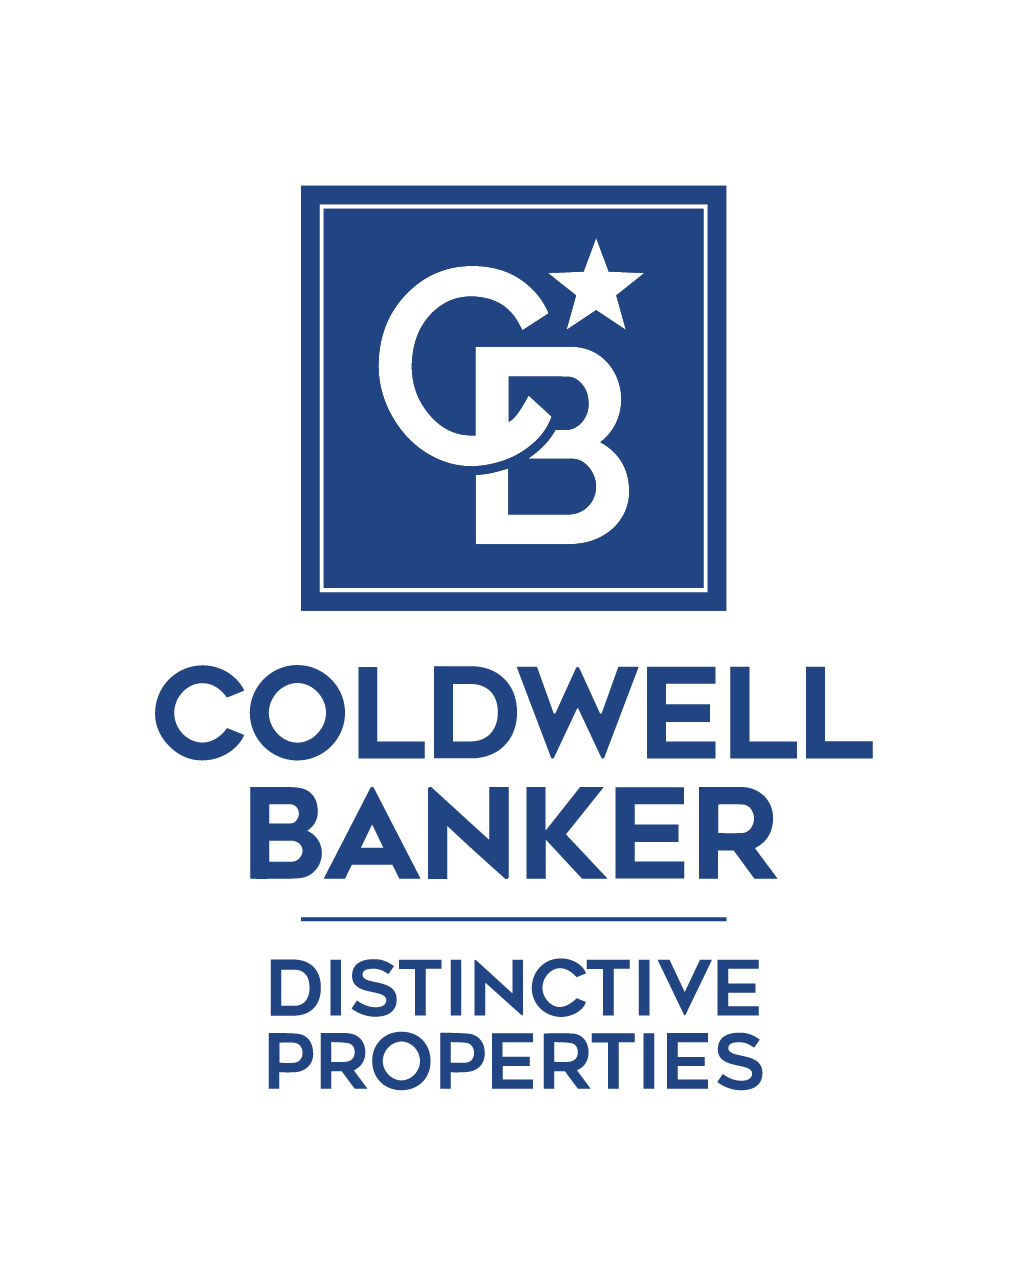 Charles Crooks - Coldwell Banker Distinctive Properties